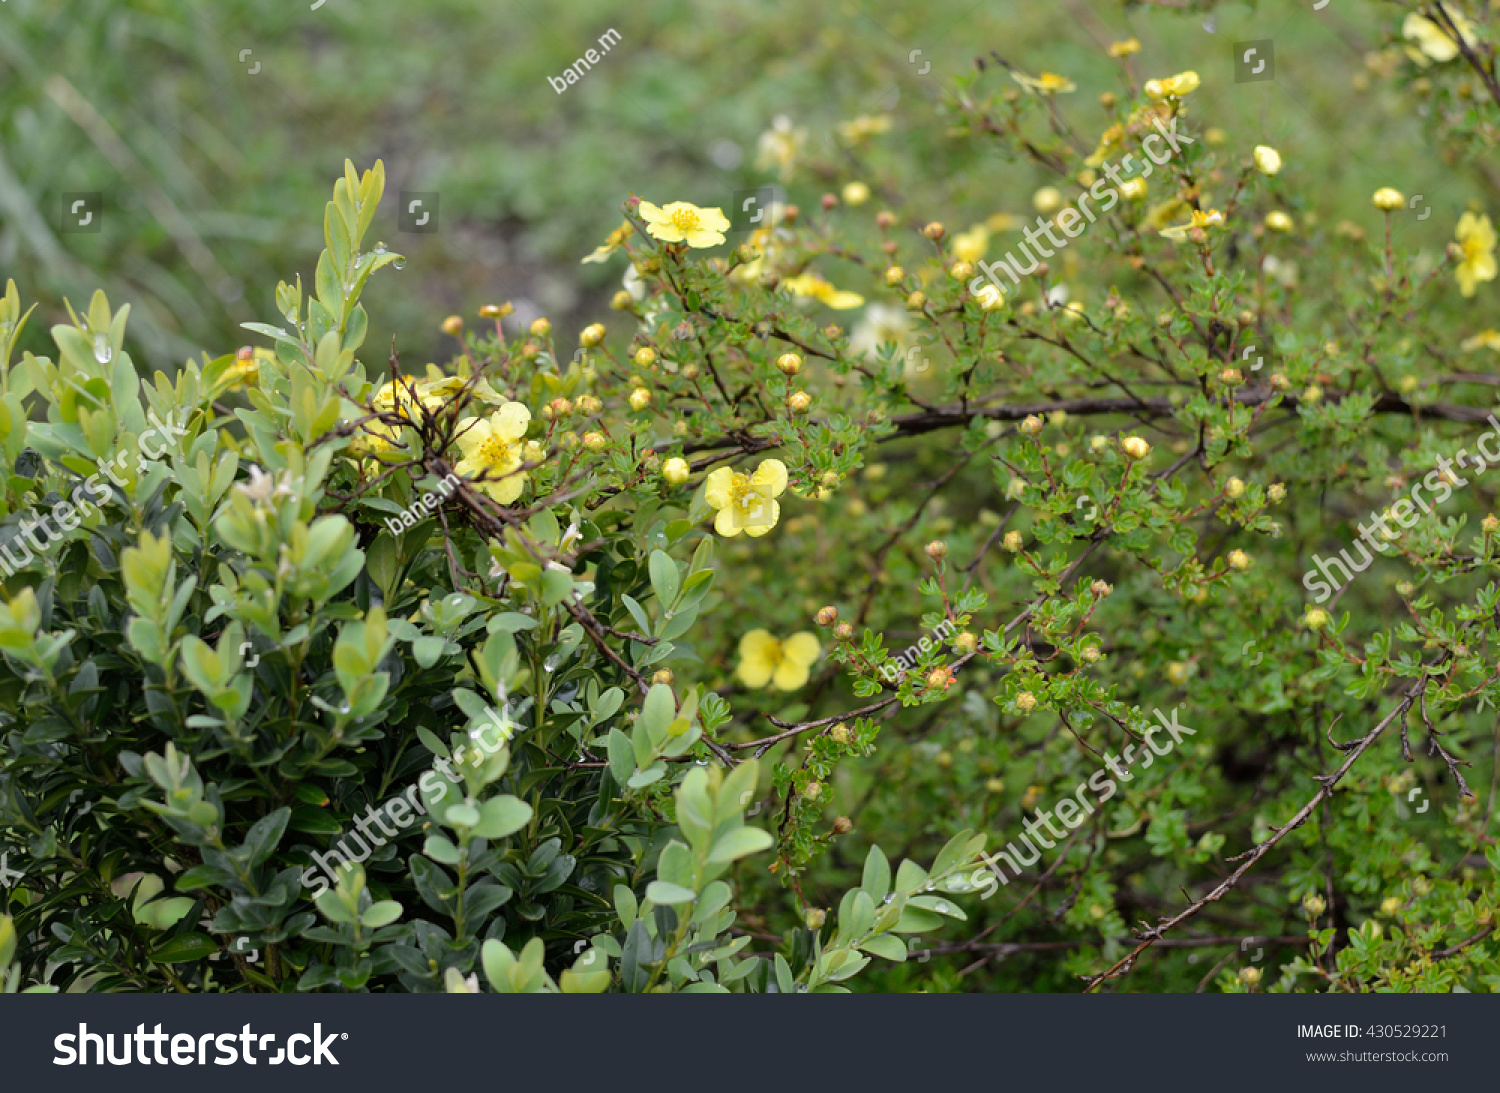 Bush yellow flowers gallery flower decoration ideas bush with small yellow flowers images flower decoration ideas bush small yellow flowers spring time stock mightylinksfo Images